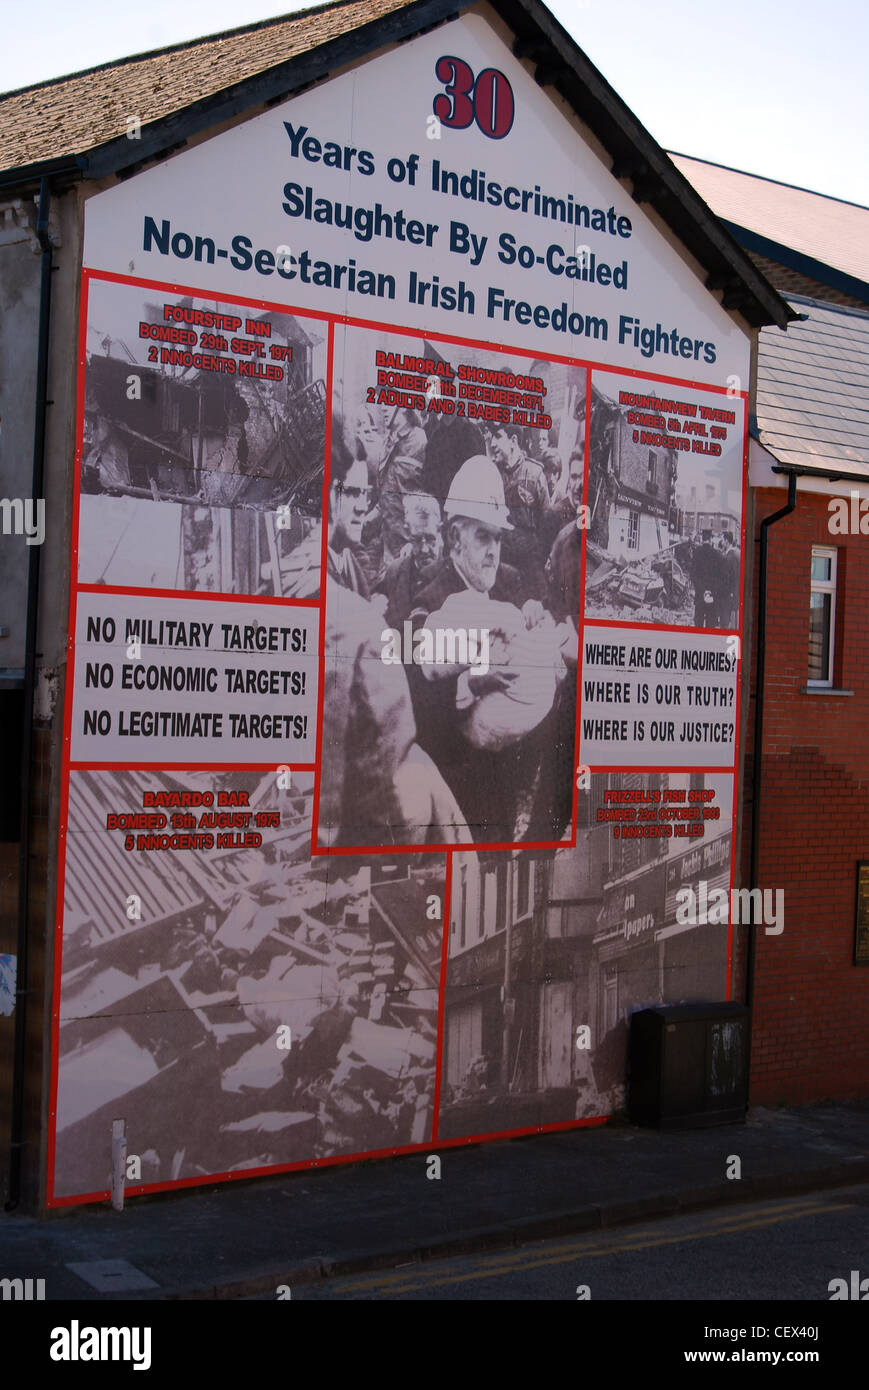 Mural made from photo panels belfast number 3035 - Stock Image